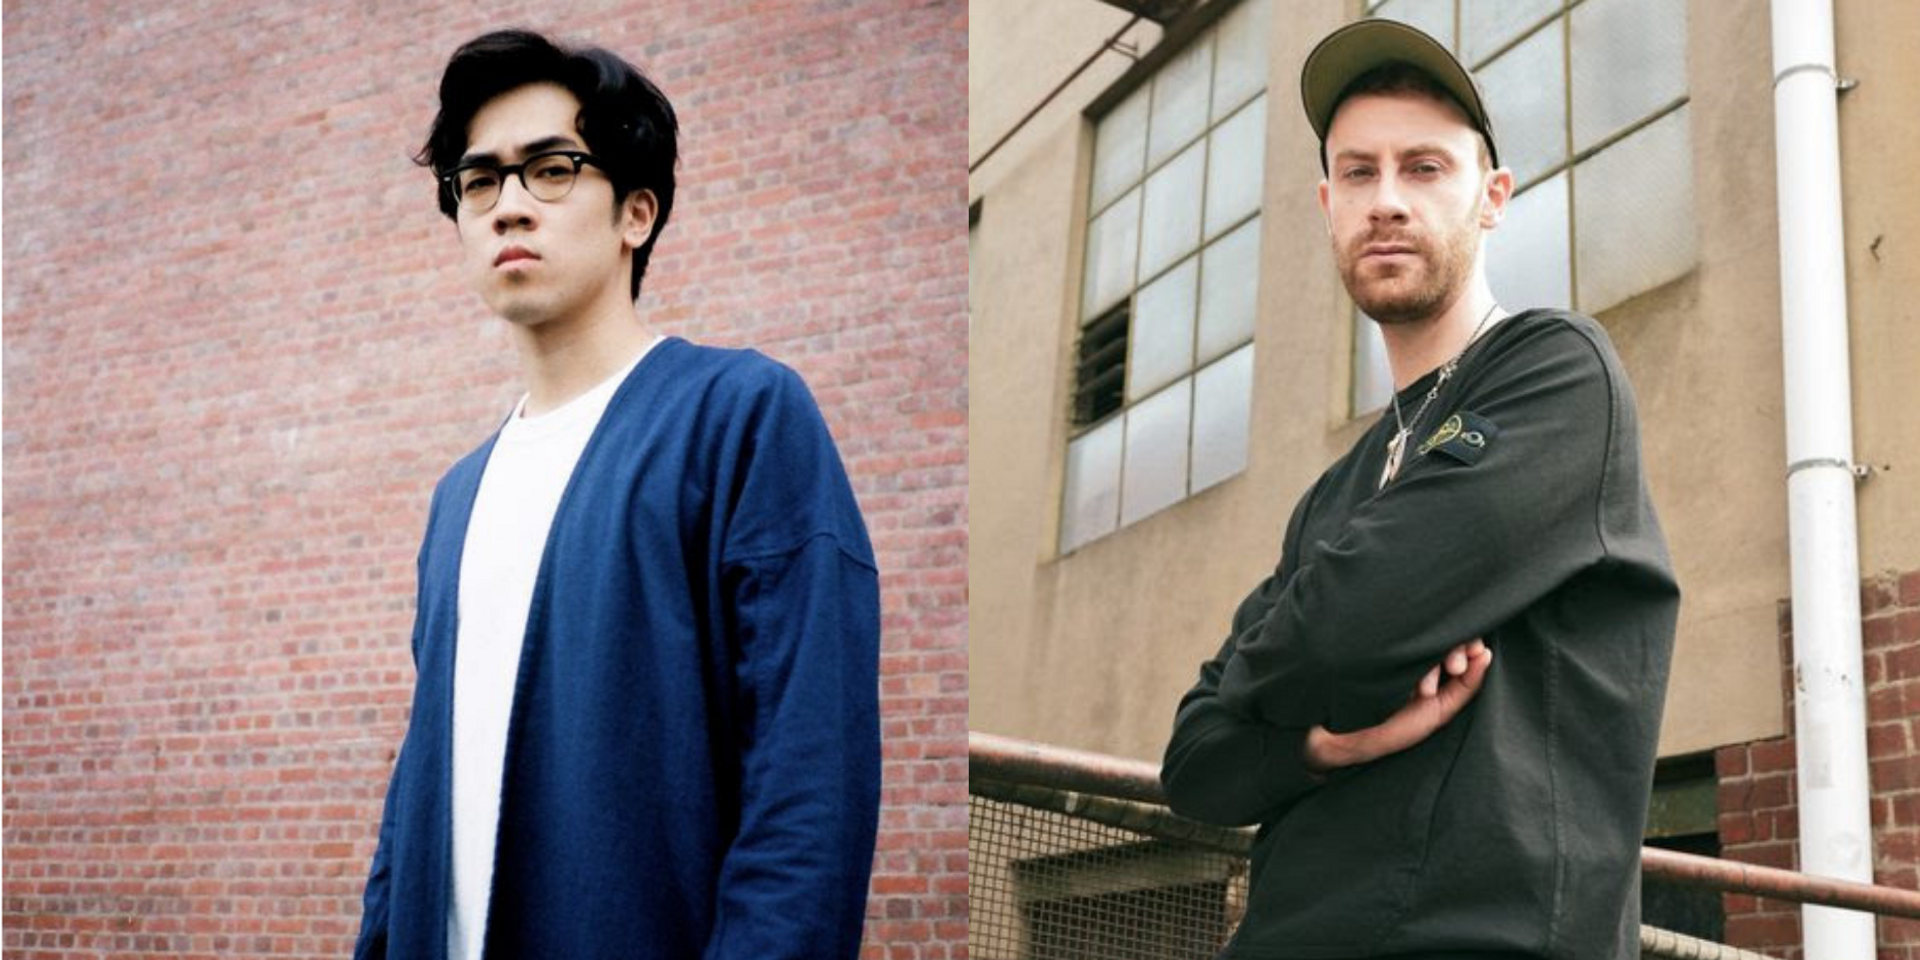 Charlie Lim ponders human nature's fickleness in new Katz collaboration 'Forgetting' — listen